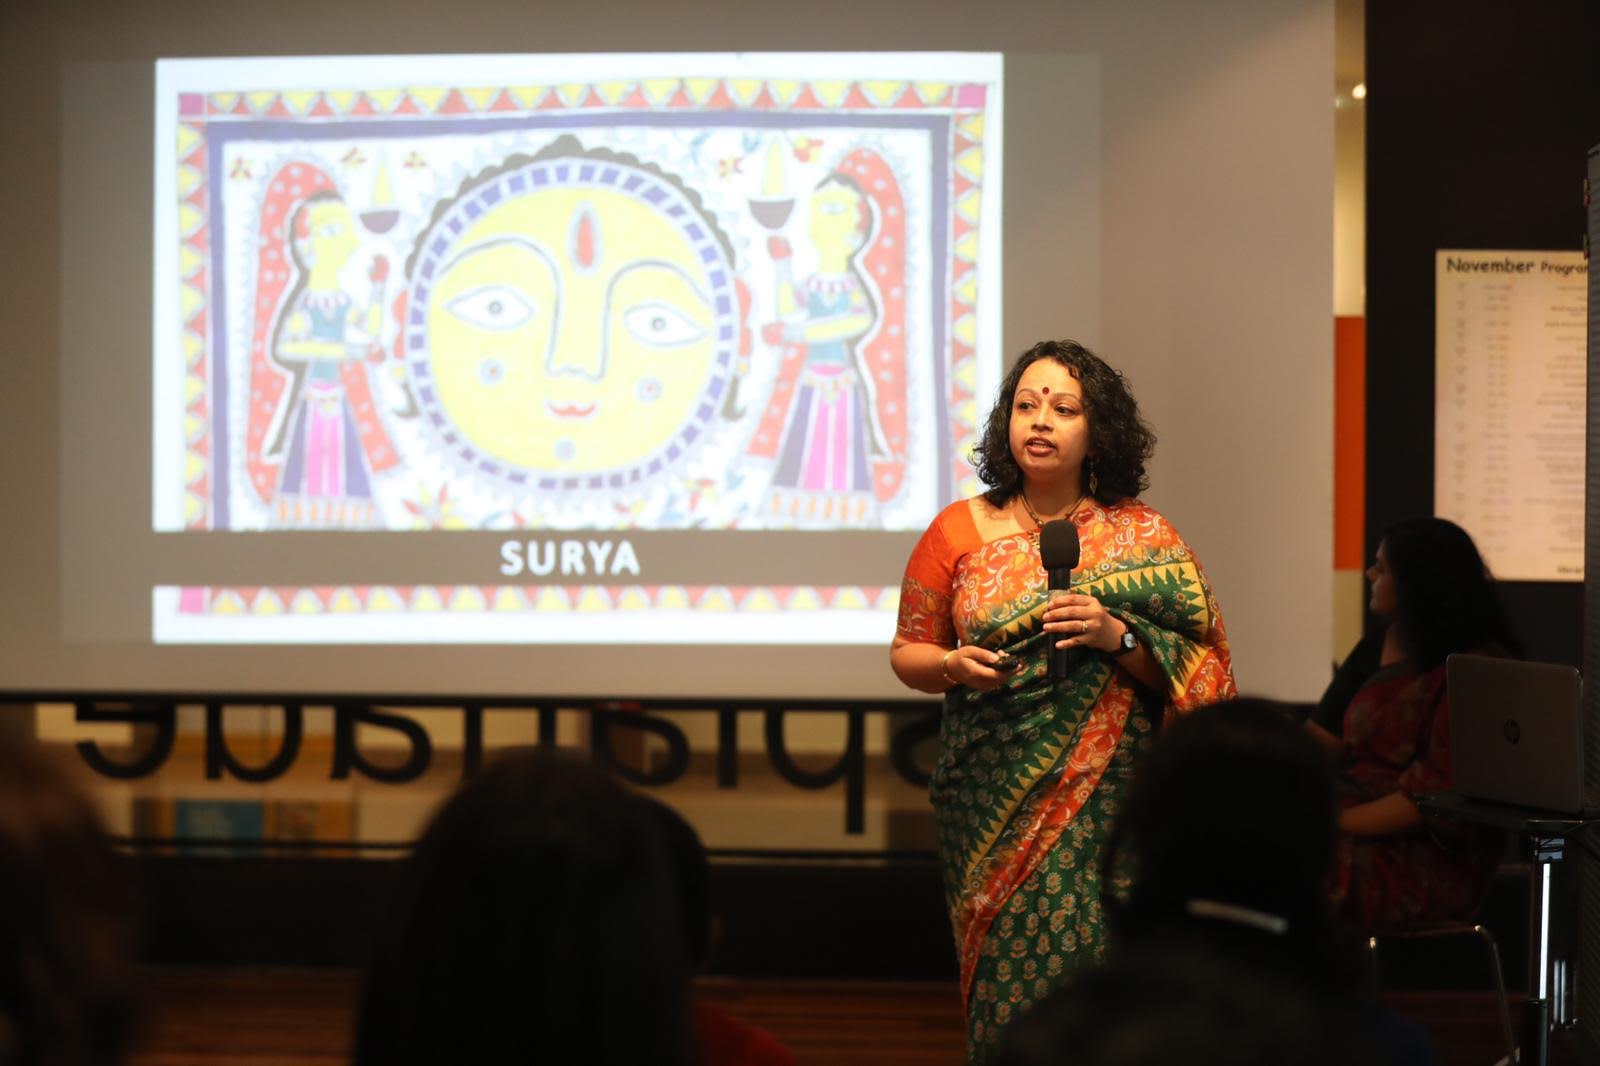 Audiences feasted their on images of the Divine from the Indian subcontinent as they learned about some of the gods in Hinduism and how they are perceived and worshipped. Photo courtesy: Esplanade